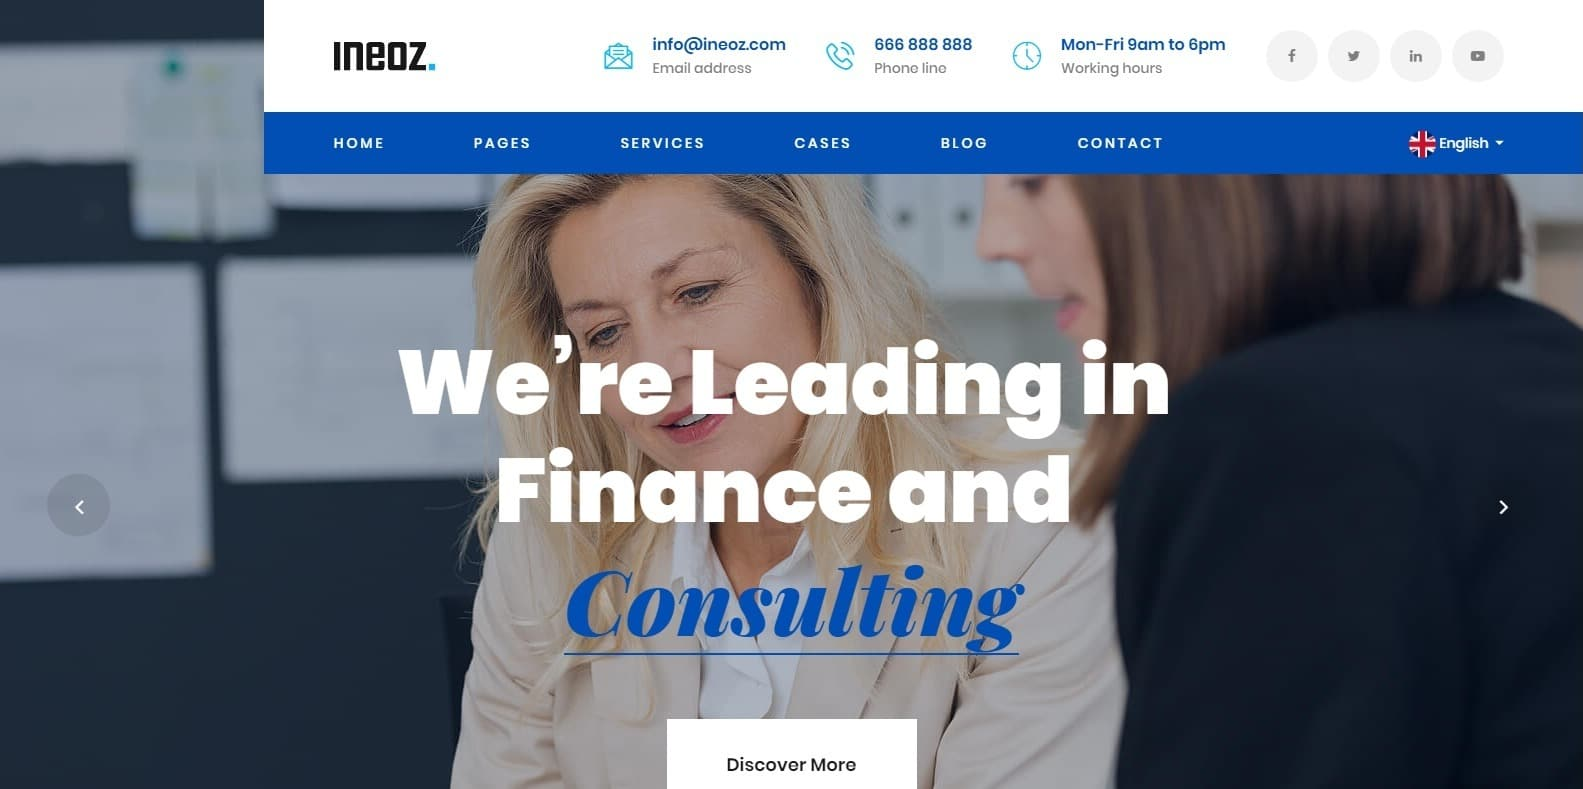 ineoz-consulting-website-template